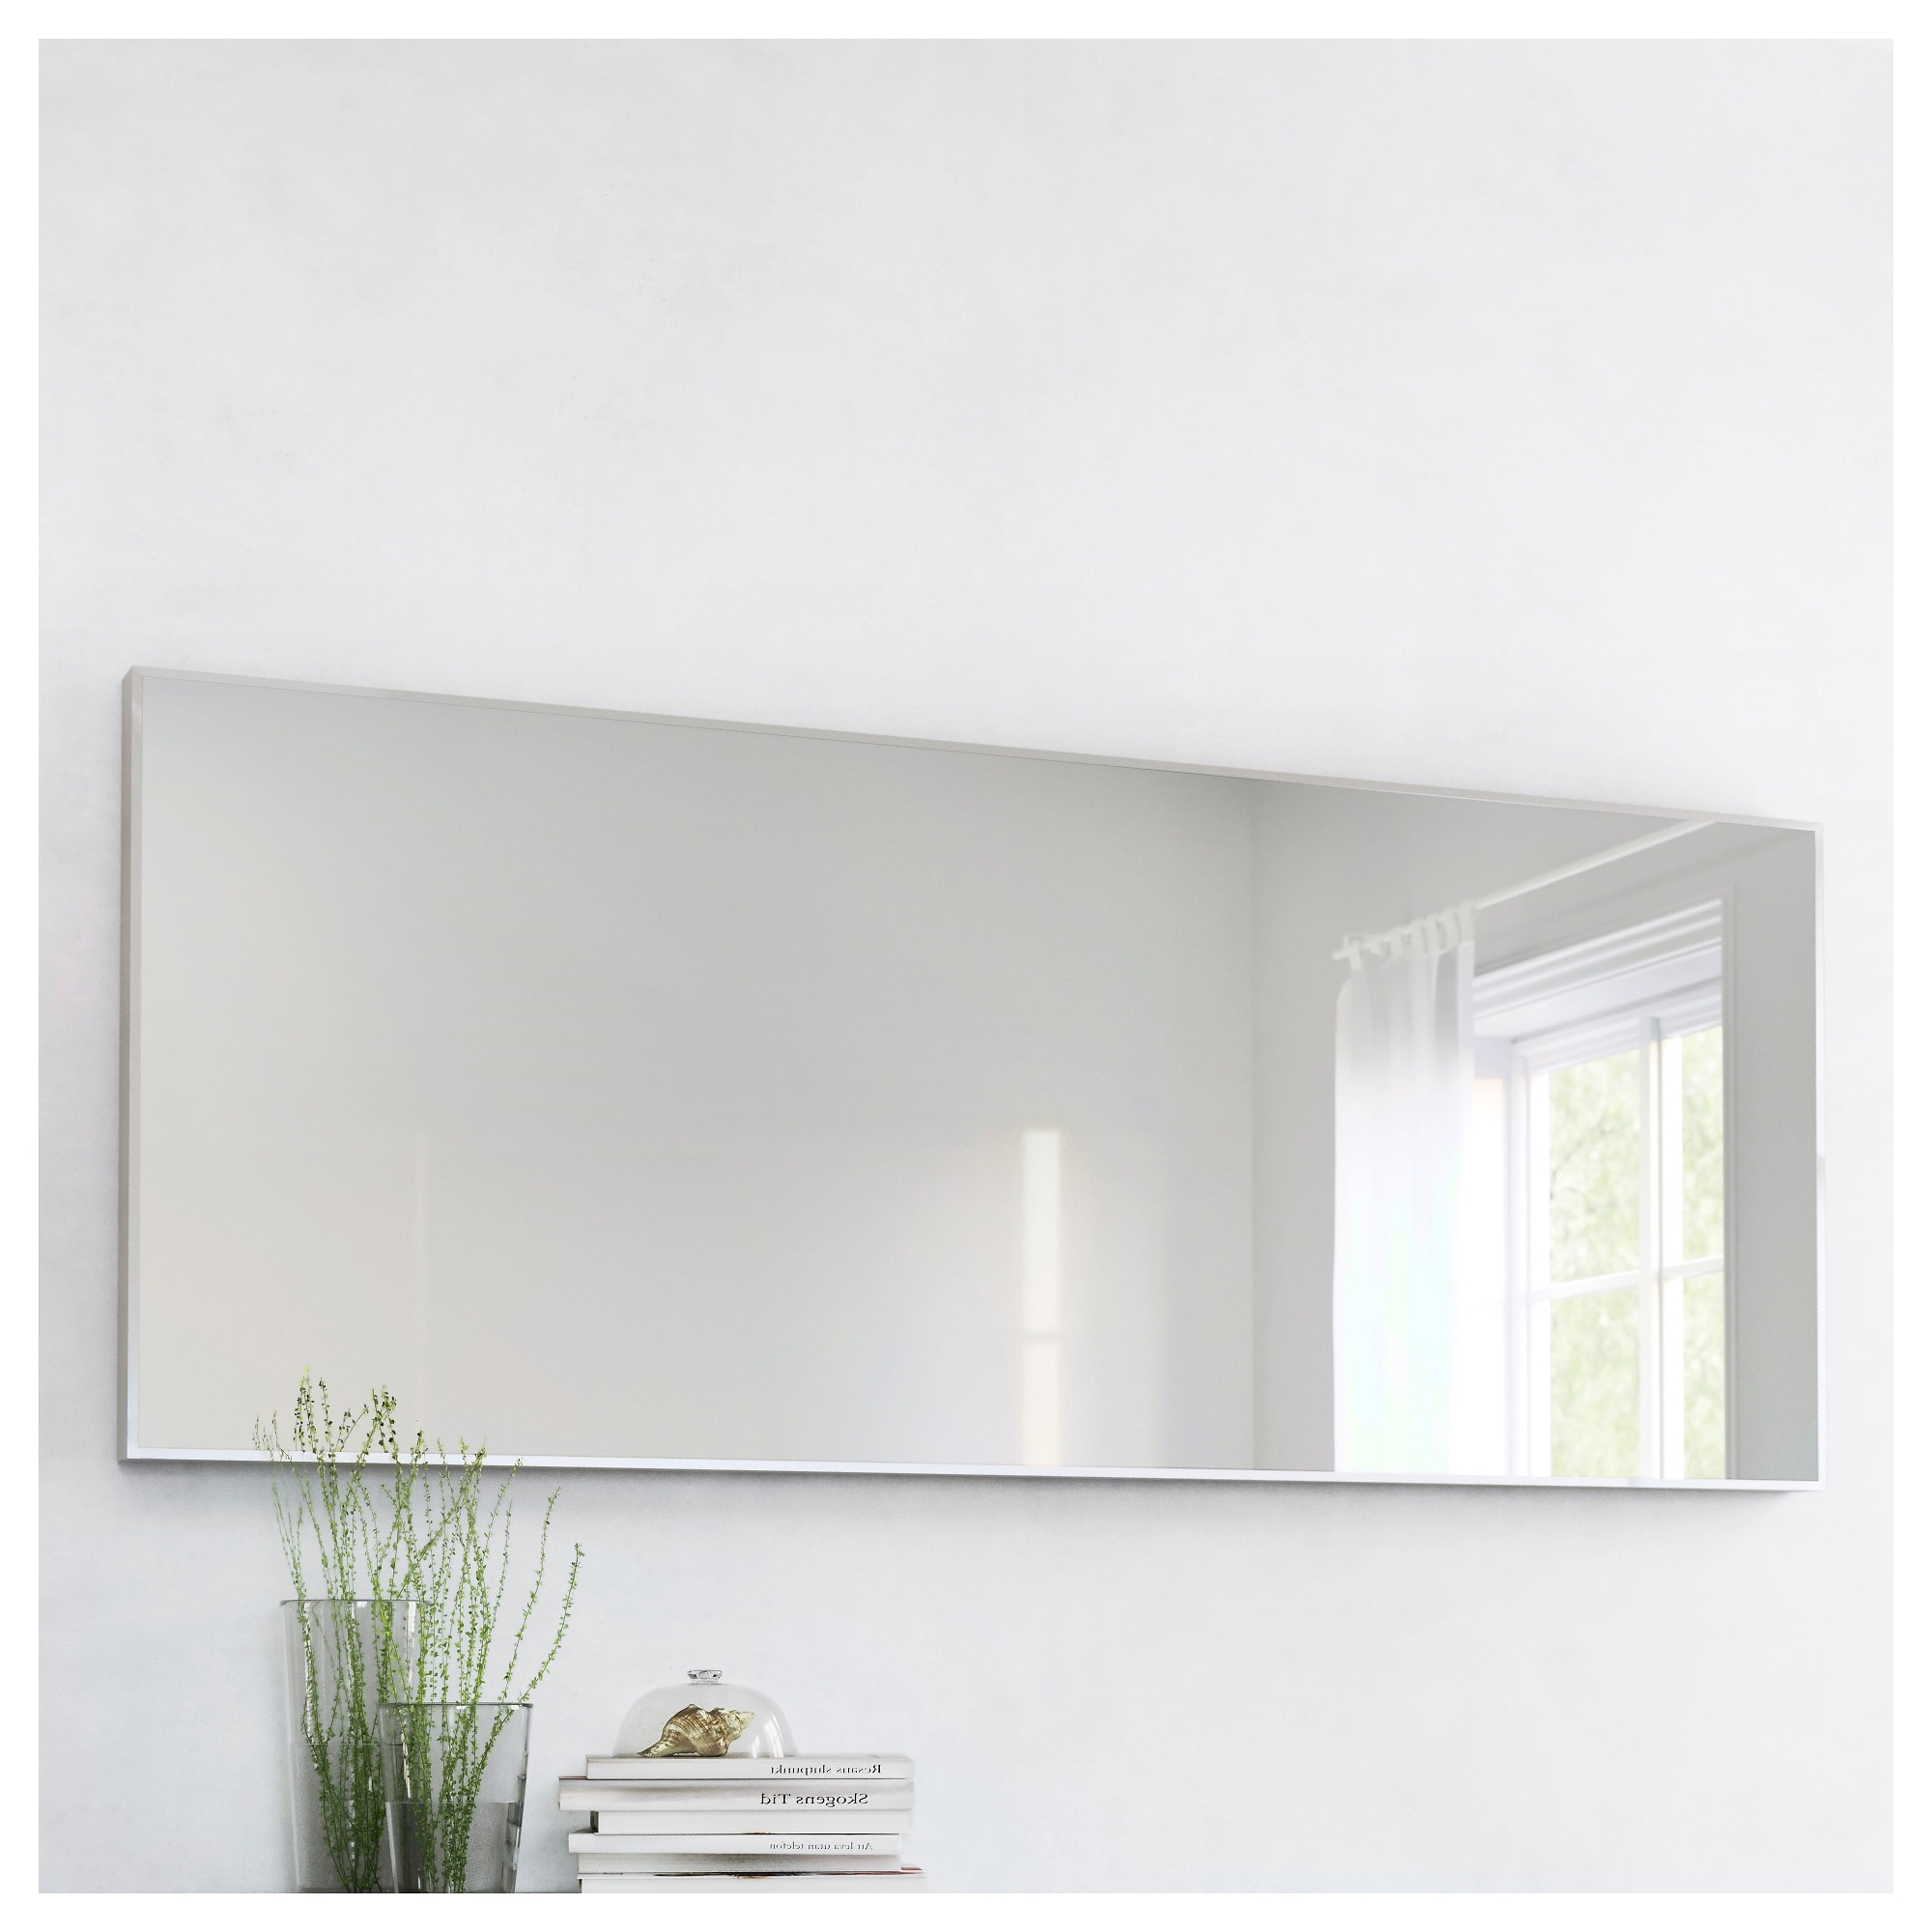 Most Recent Ikea Full Length Wall Mirrors With Decor: Sophisticated Hovet Mirror For Home Design Ideas (View 15 of 20)